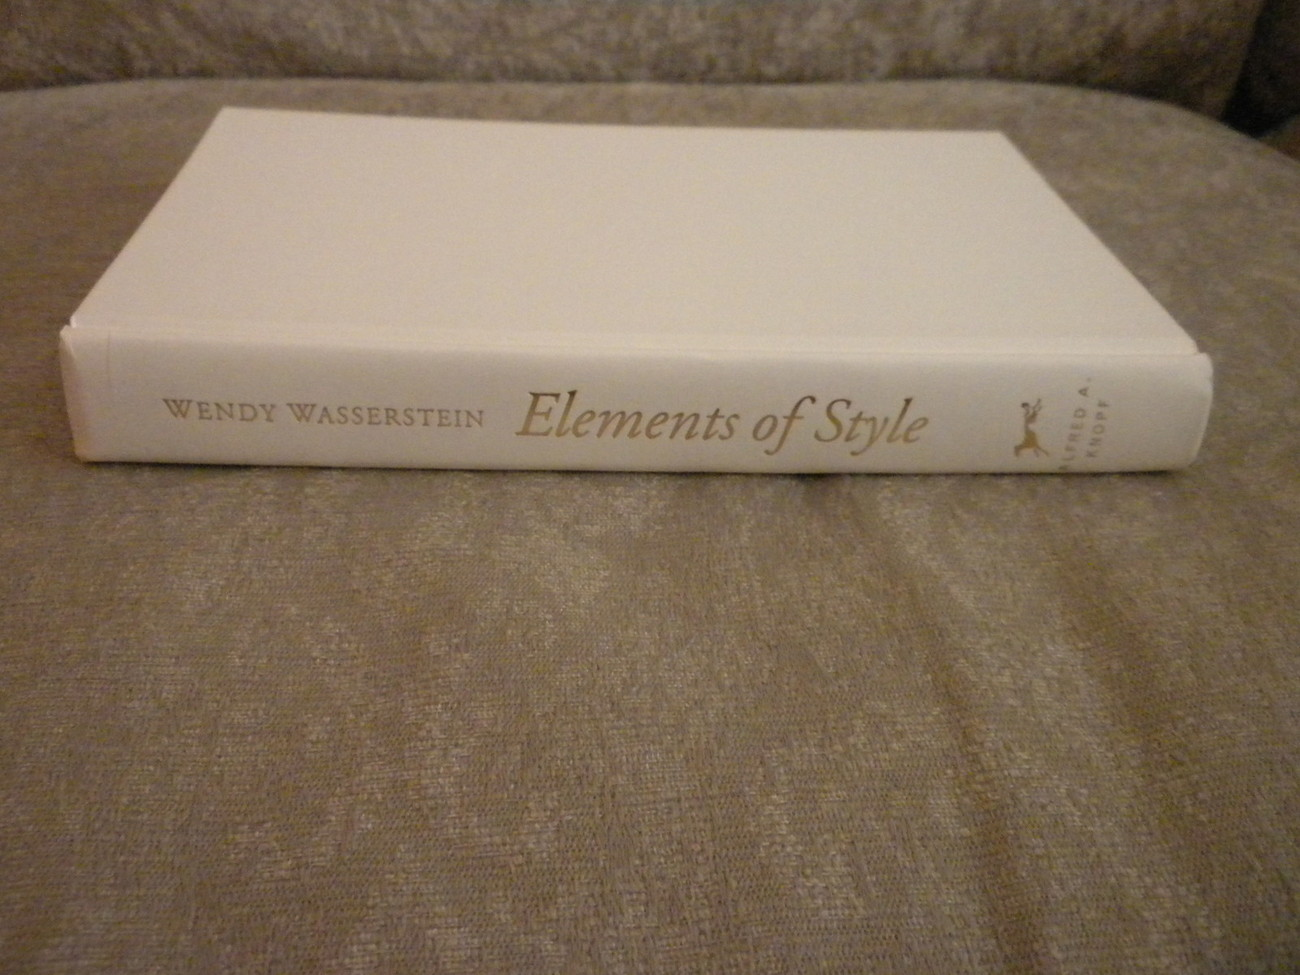 Elements of Style by Wendy Wasserstein HCwDJ stated 1st Edition Knopf  2006 NF